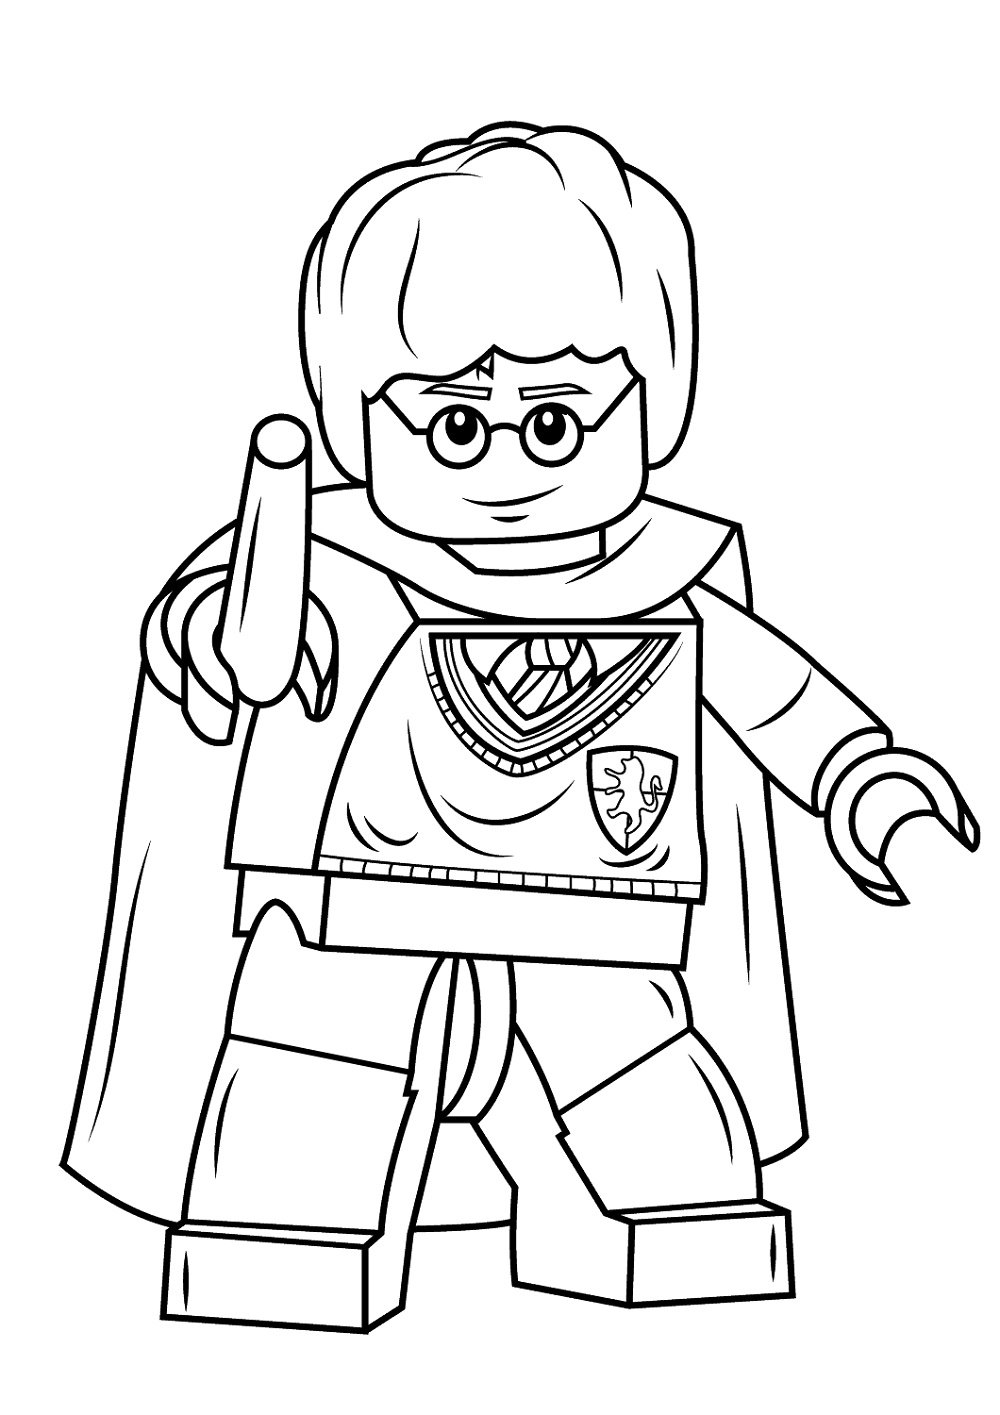 harry potter lego coloring pages print lego albus dumbledore harry potter coloring pages potter harry pages lego coloring